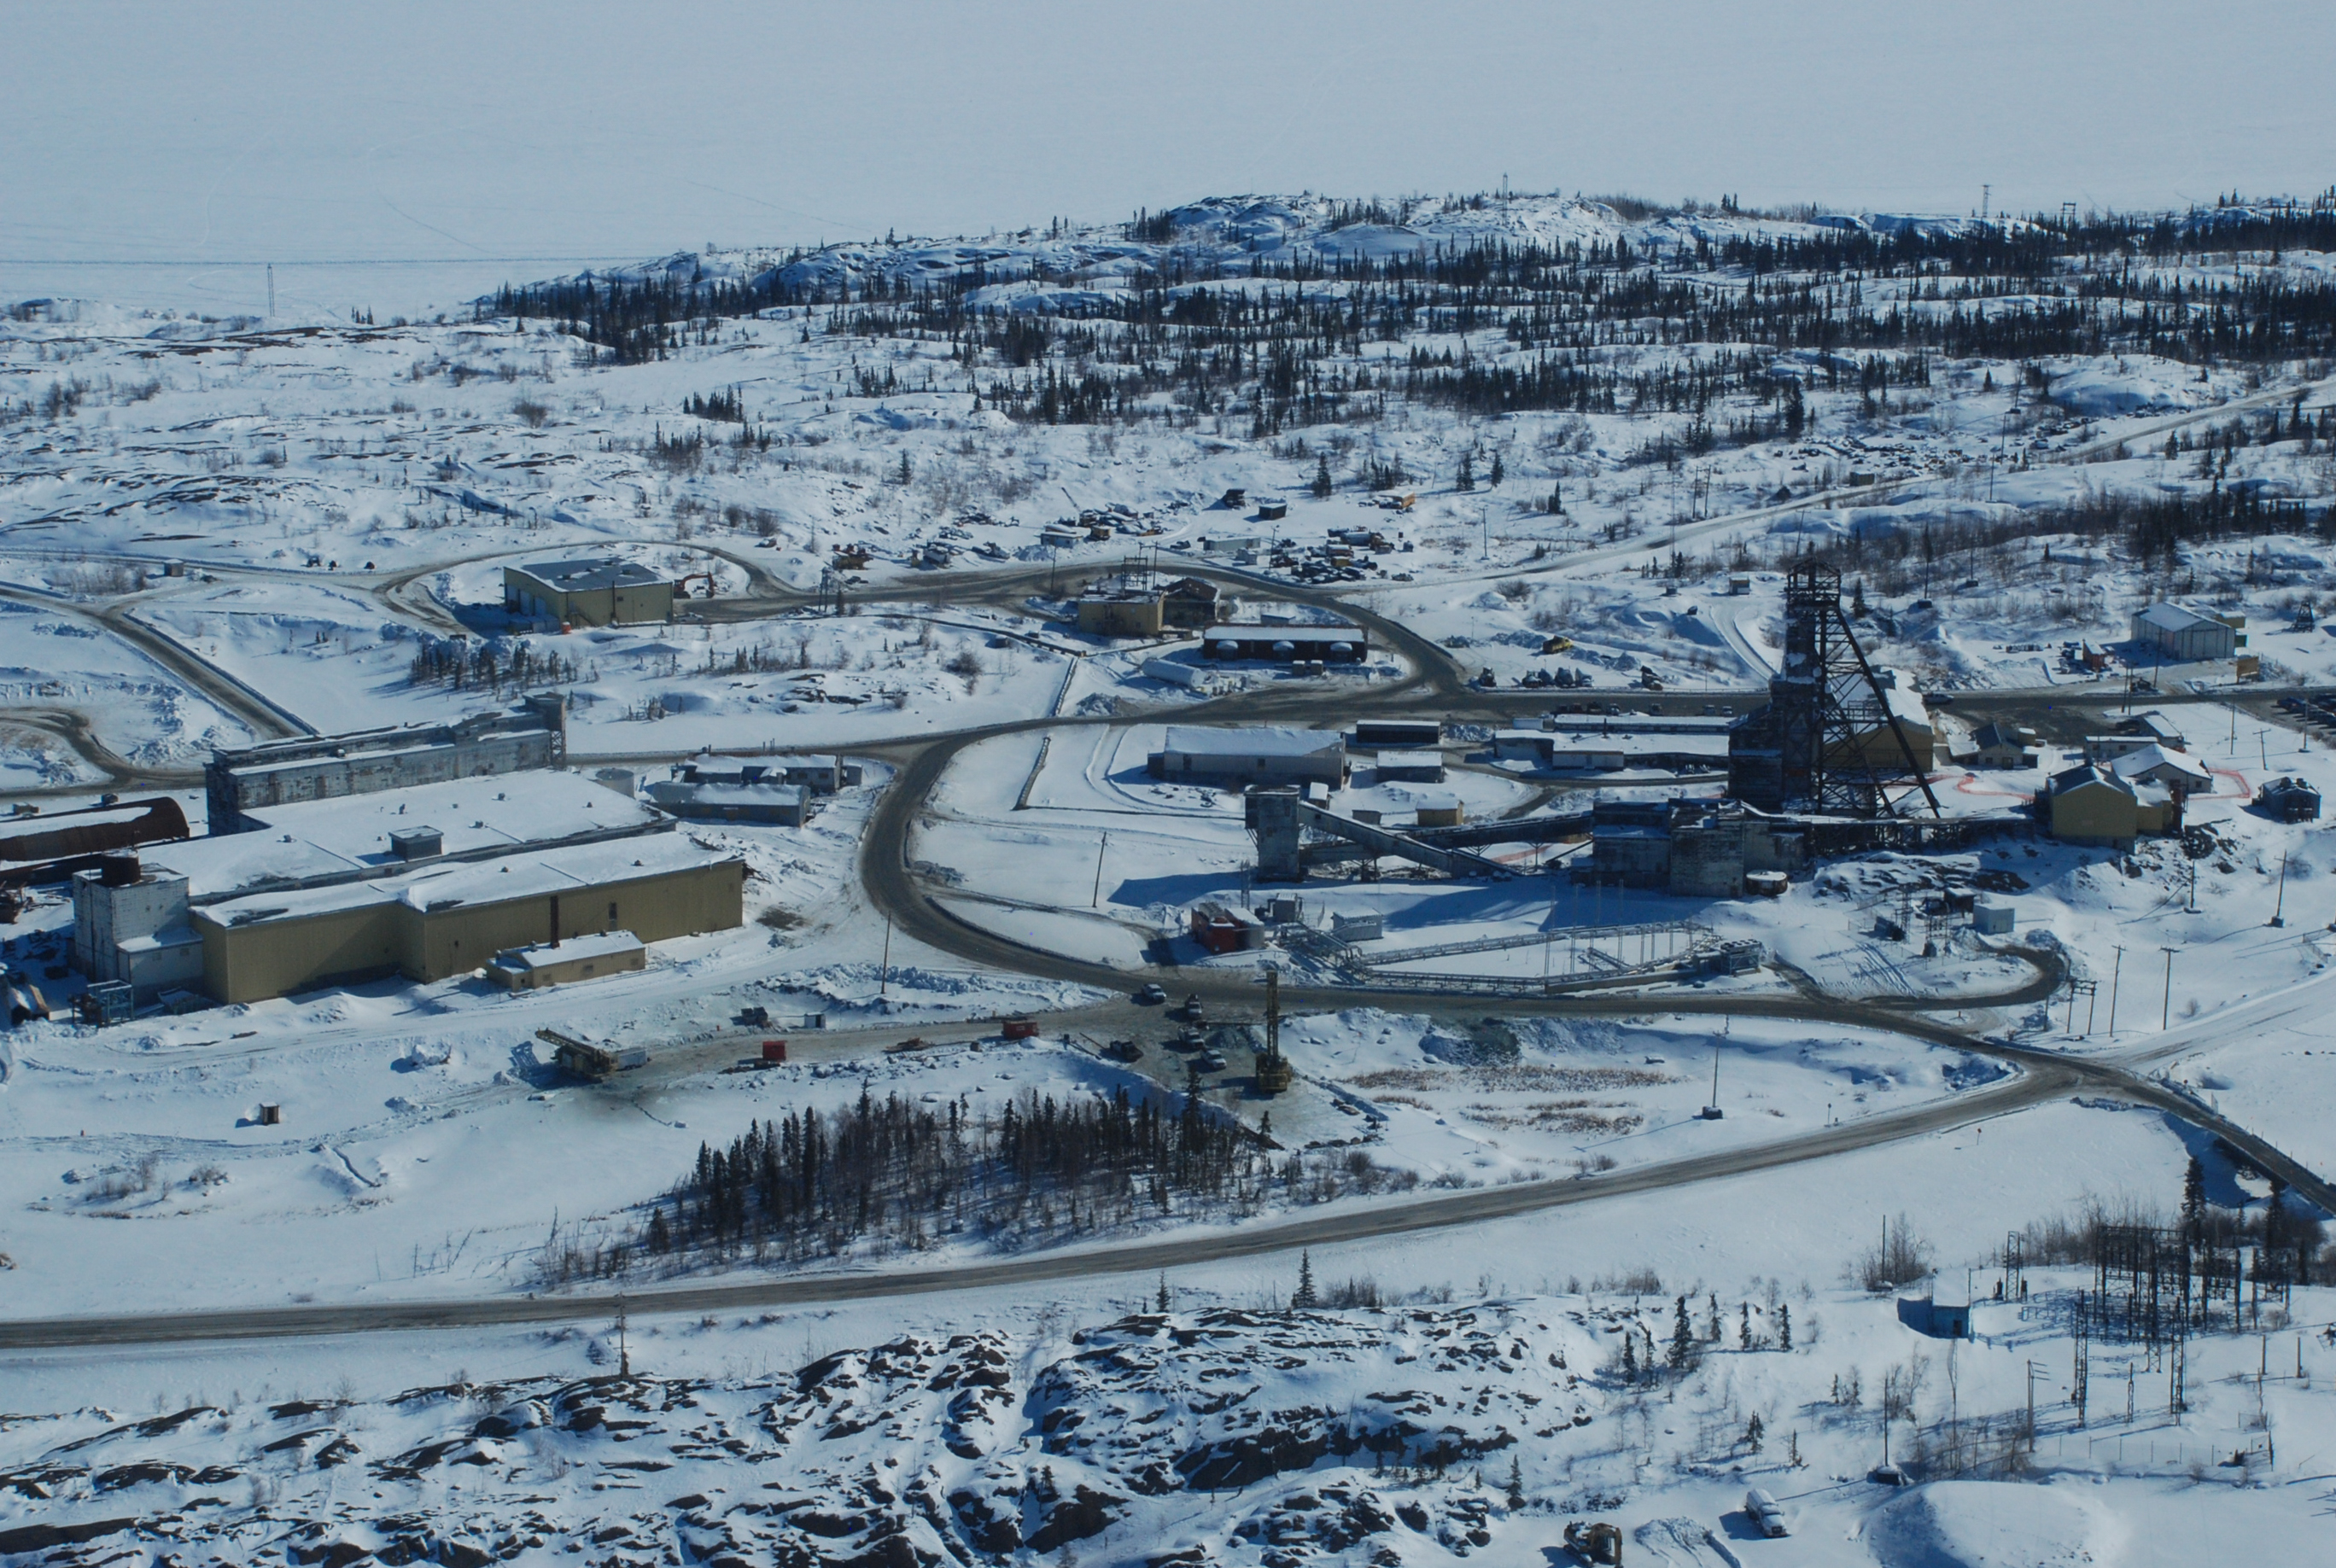 Giant gold mine in Yellowknife, Northwest Territories, released thousands of tonnes of toxic arsenic trioxide from its roaster stack during its operation between 1948 and 2004. (Photo courtesy of University of Ottawa)